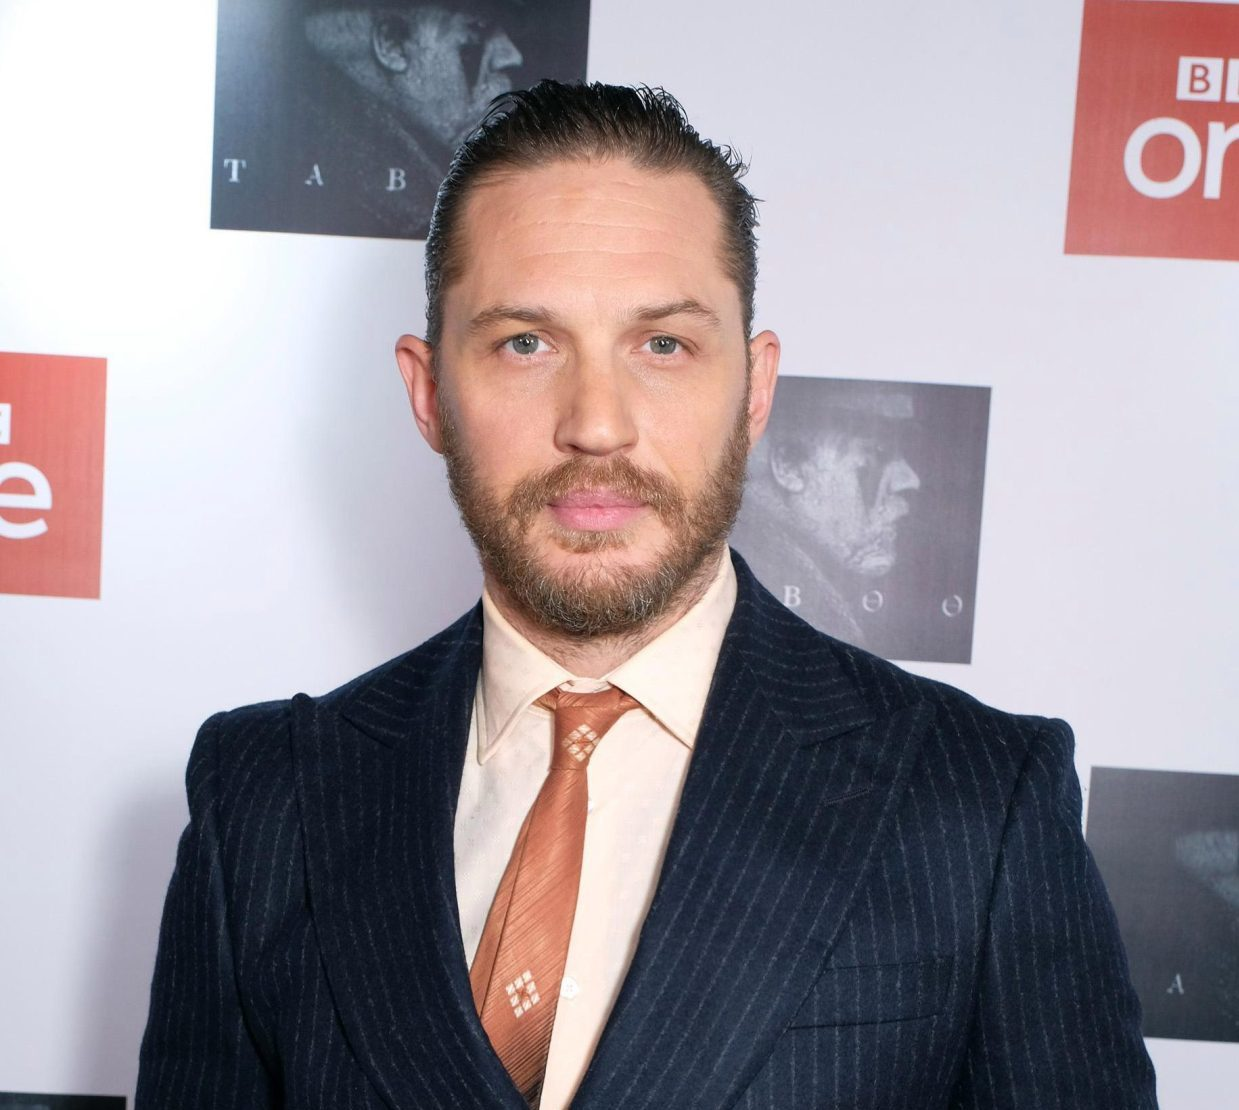 nintchdbpict0002856102221 e1611674486248 40 Things You Didn't Know About Tom Hardy